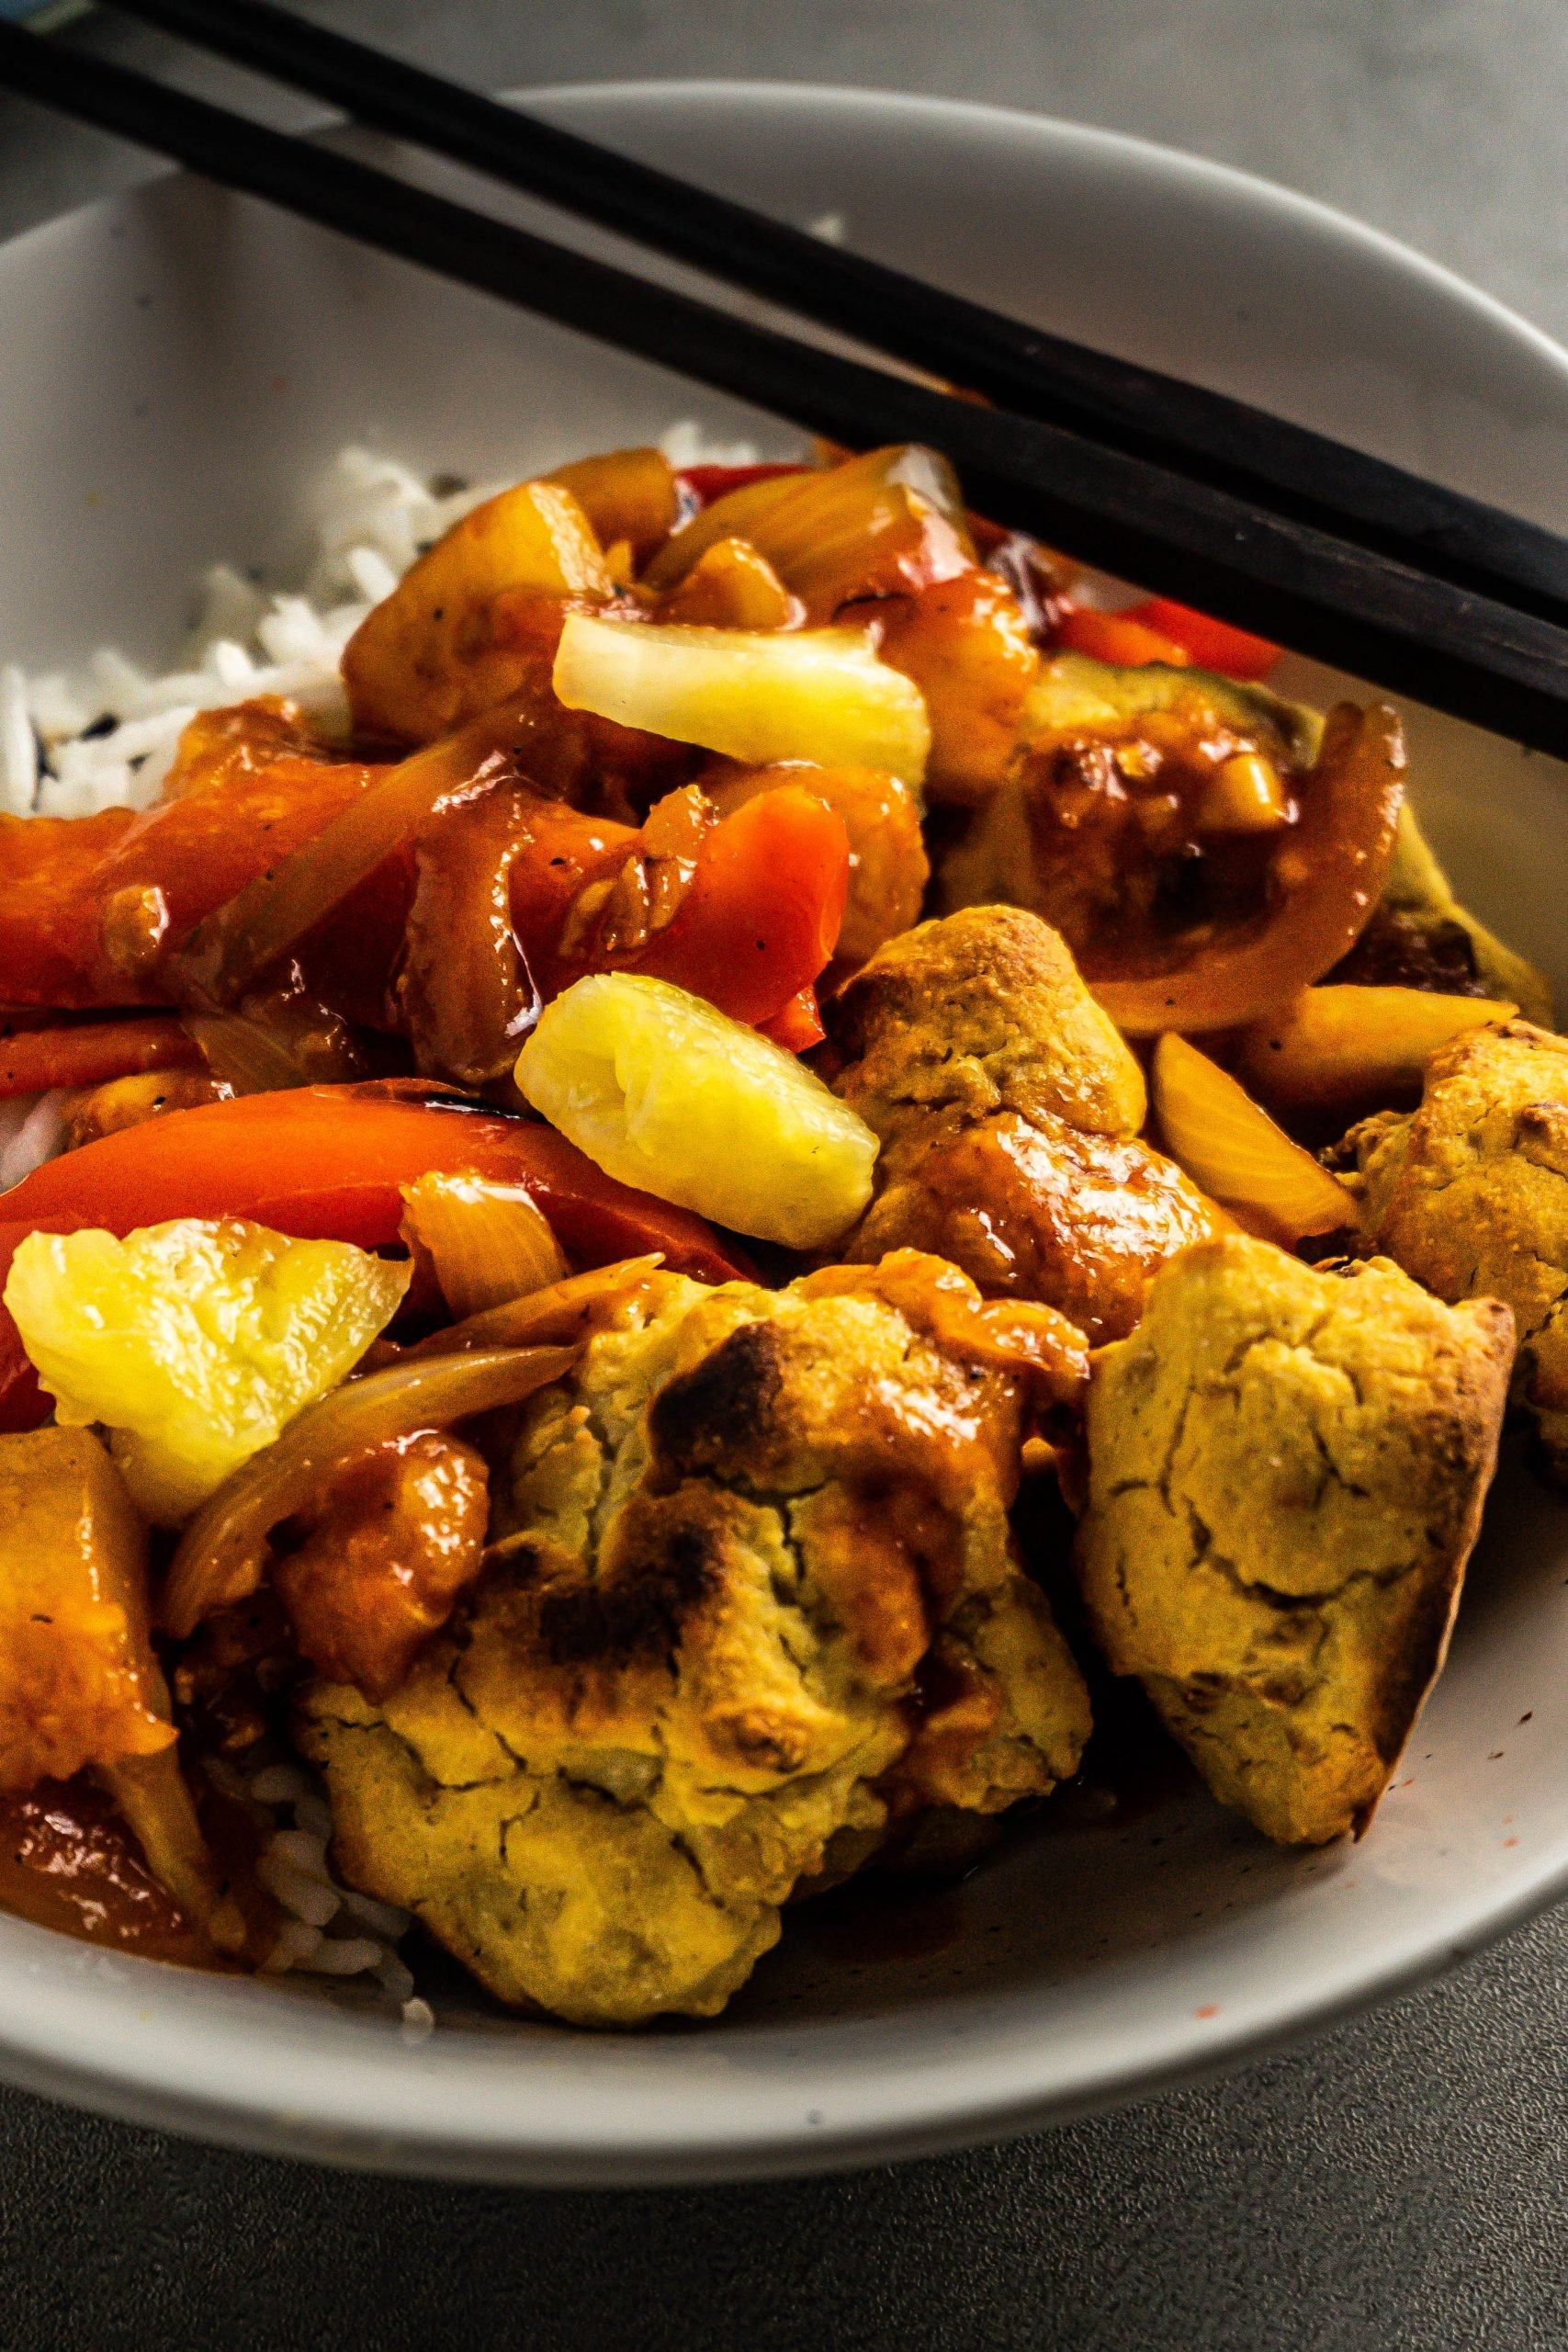 Chinese Sweet and Sour (Sauce) with rice and battered cauliflower, in a bowl with some chopsticks ready for eating photographed up close